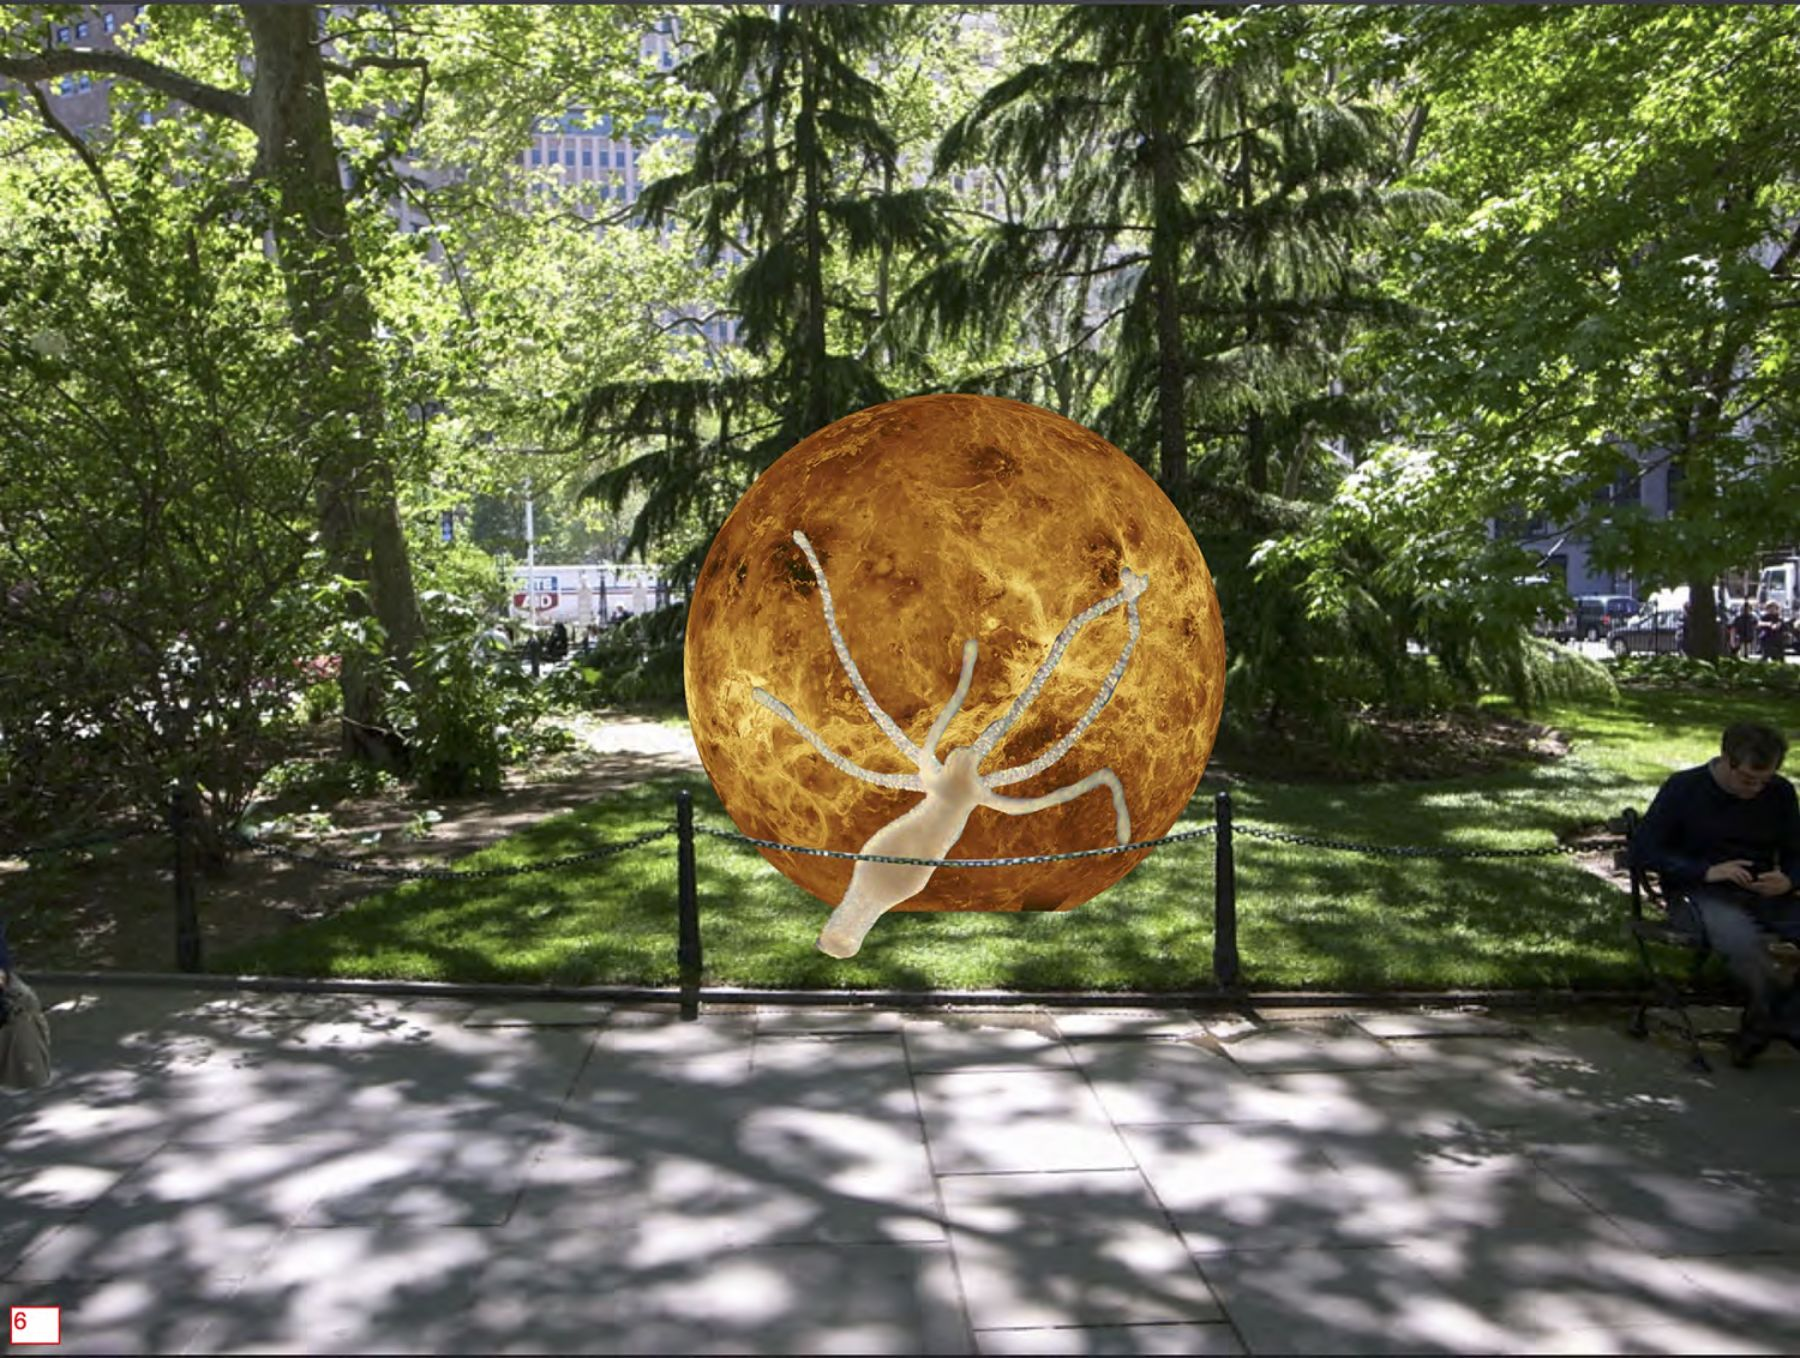 This June, as part of its 40th anniversary, Public Art Fund will present Earth Potential, a new exhibition by emerging Estonian artist Katja Novitskova. Her first major institutional show and outdoor commission in the United States, the exhibition will transform Lower Manhattan's City Hall Park into a surreal landscape with a new series of seven large, flat cut aluminum sculptures. Featuring online-sourced, digitally-printed imagery, the works layer alien-like, yet terrestrial animals and organisms over celestial bodies and planets. By creating images at once scientific and poetic, these dramatic, visual objects expose worlds unseen by the naked eye yet indispensable to human advancement. The flatness of the sculptures replicates the experience of viewing images online, while the imagery and its connotations—from science fiction to achievements in image making—will encourage visitors to consider how developments in technology have changed our perceptions of the natural world. Earth Potential will be on view from June 22 – November 9, 2017 at City Hall Park, Lower Manhattan.,